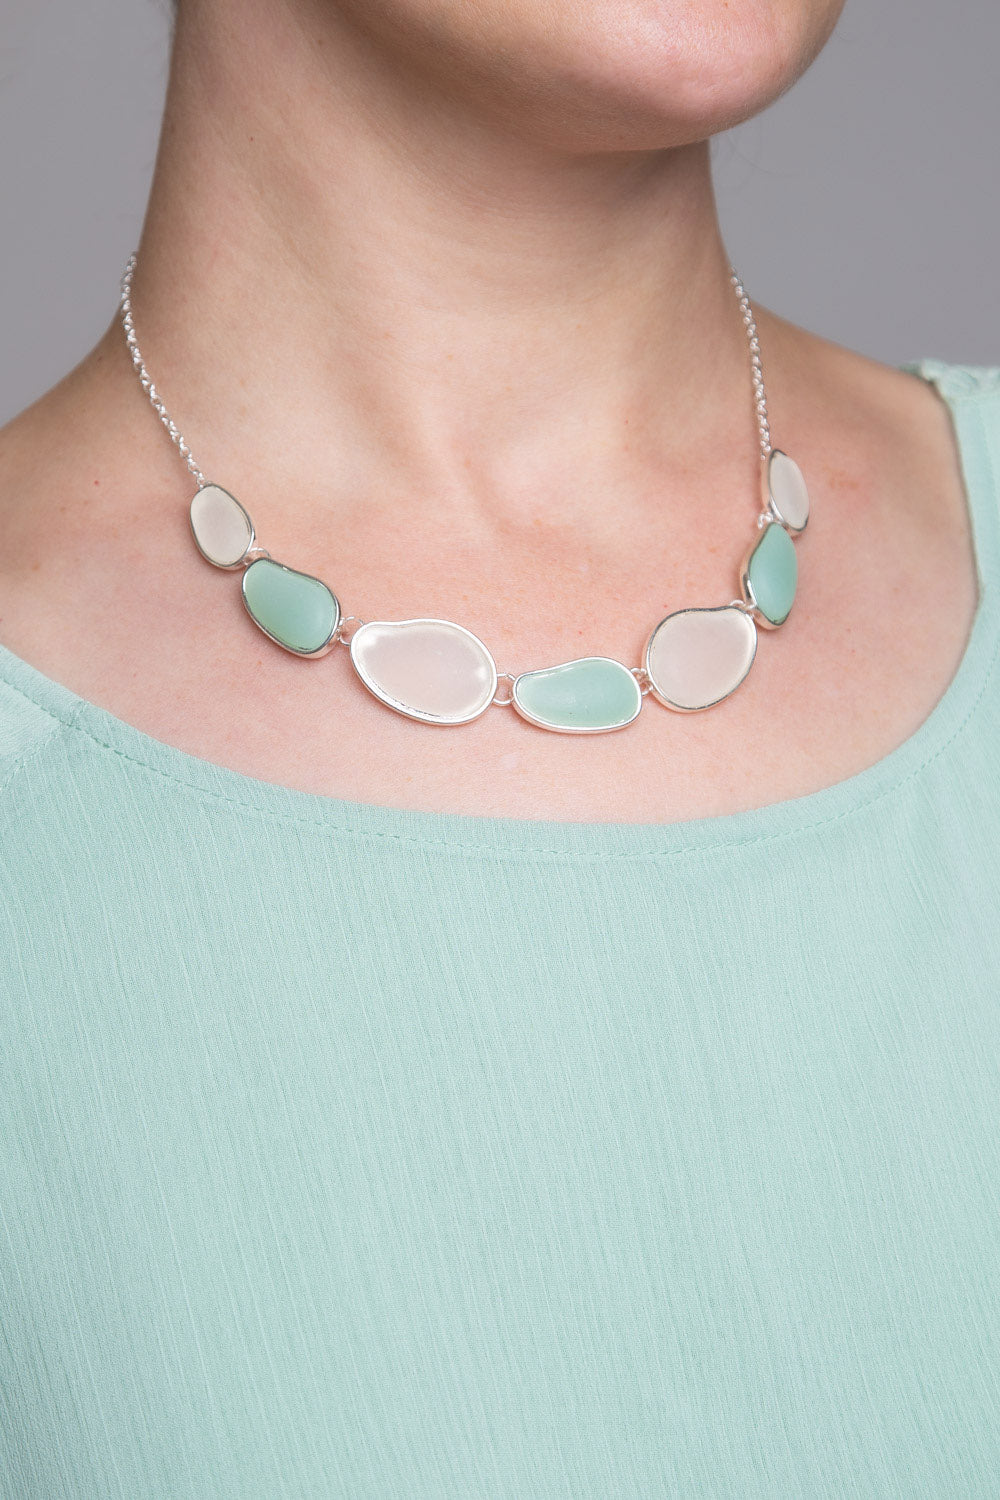 Type 2 Mint For Me Necklace/ Earrings Set